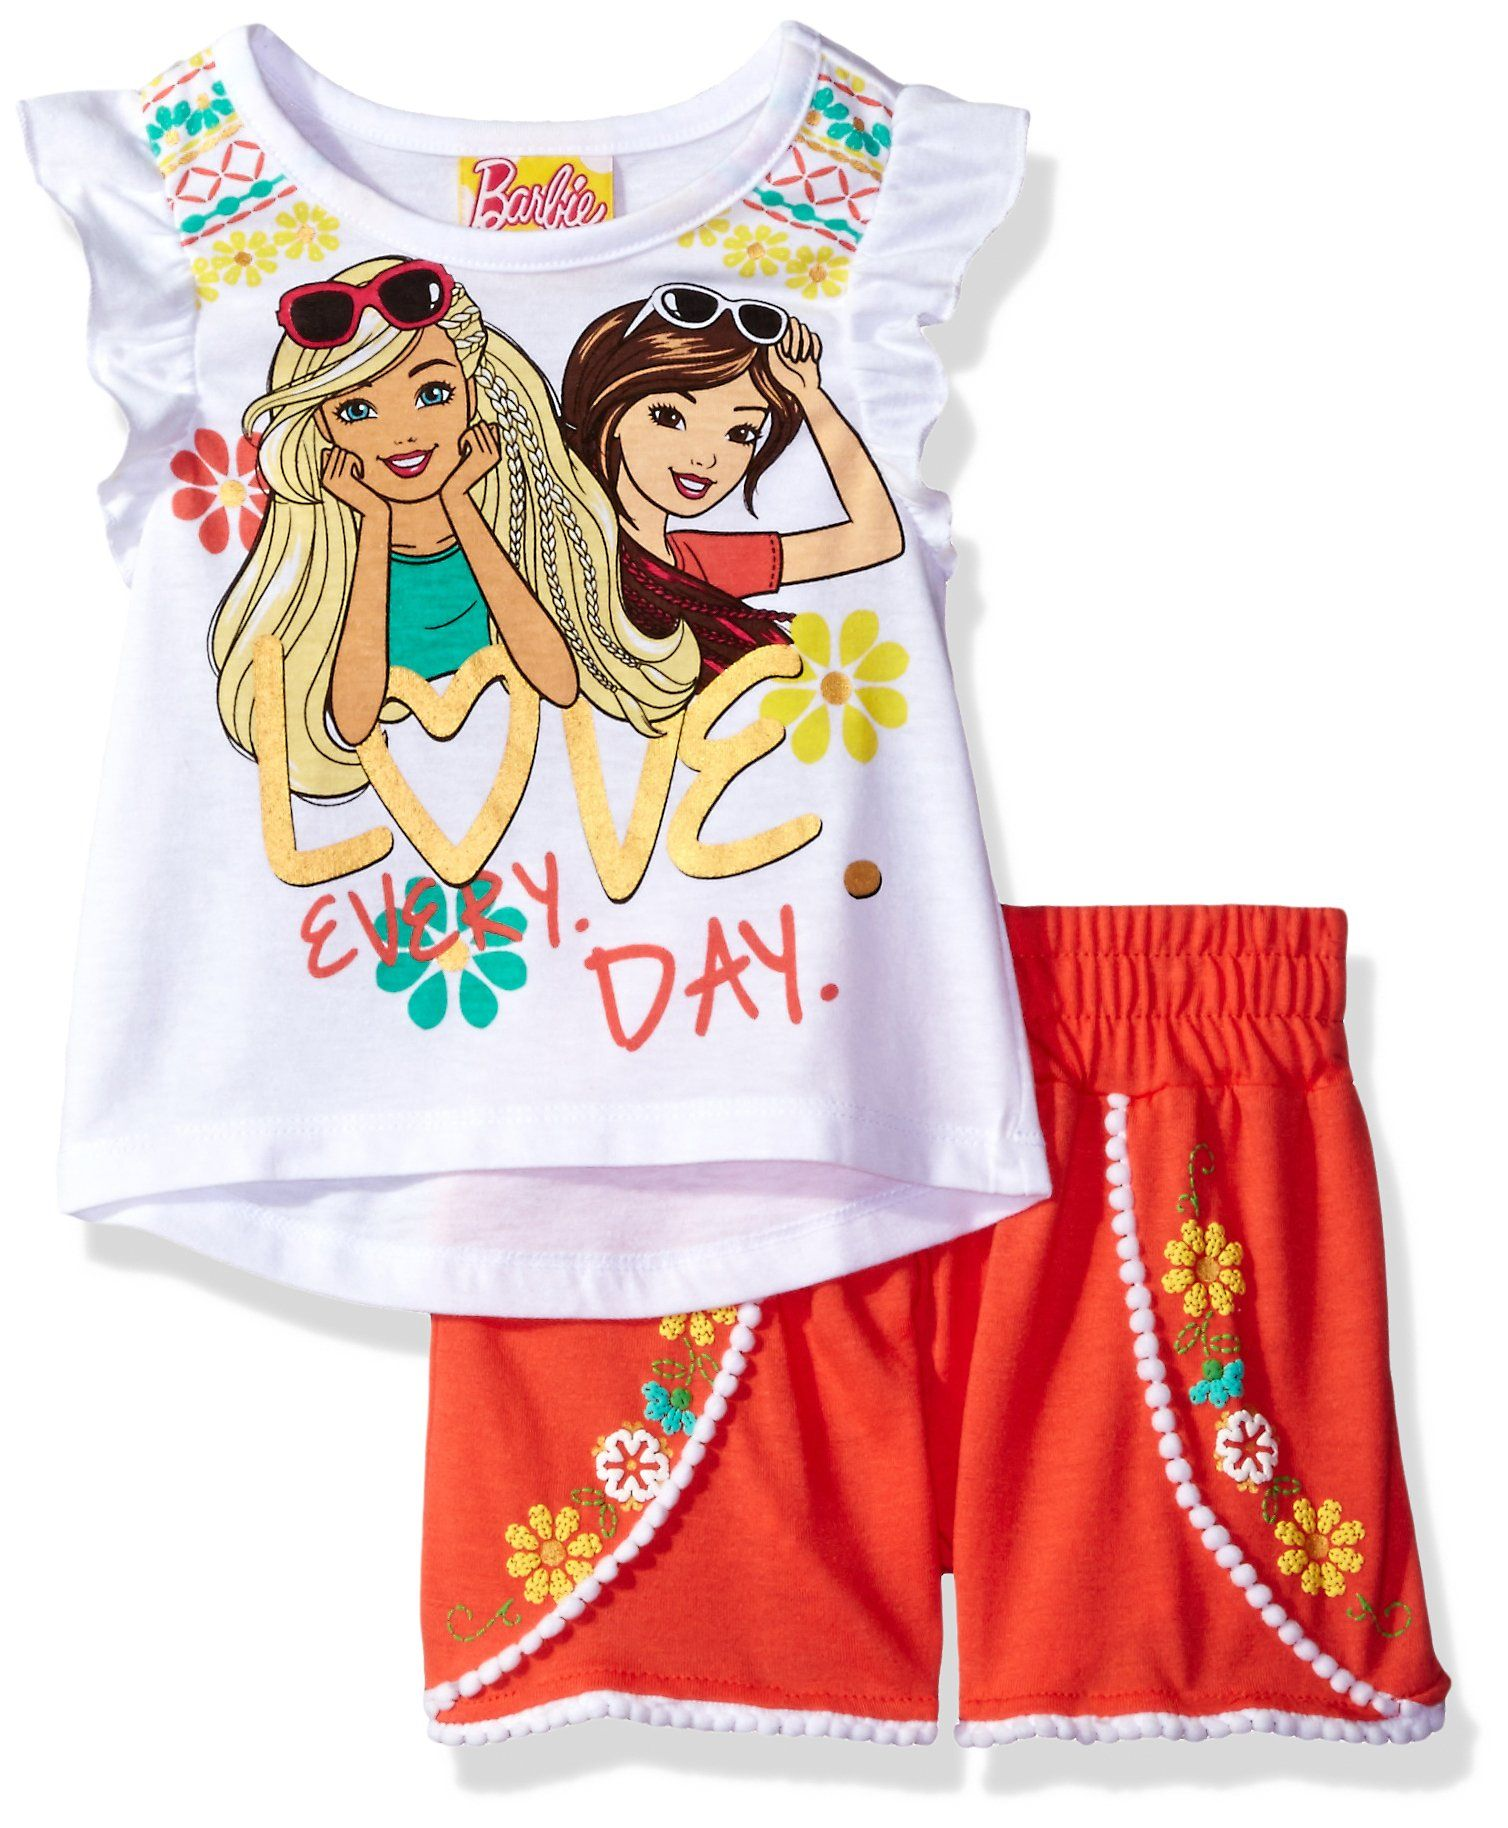 040054e34 Barbie Toddler Girls' 2 Piece Tee and Short Set, White, 4t. Screen ...